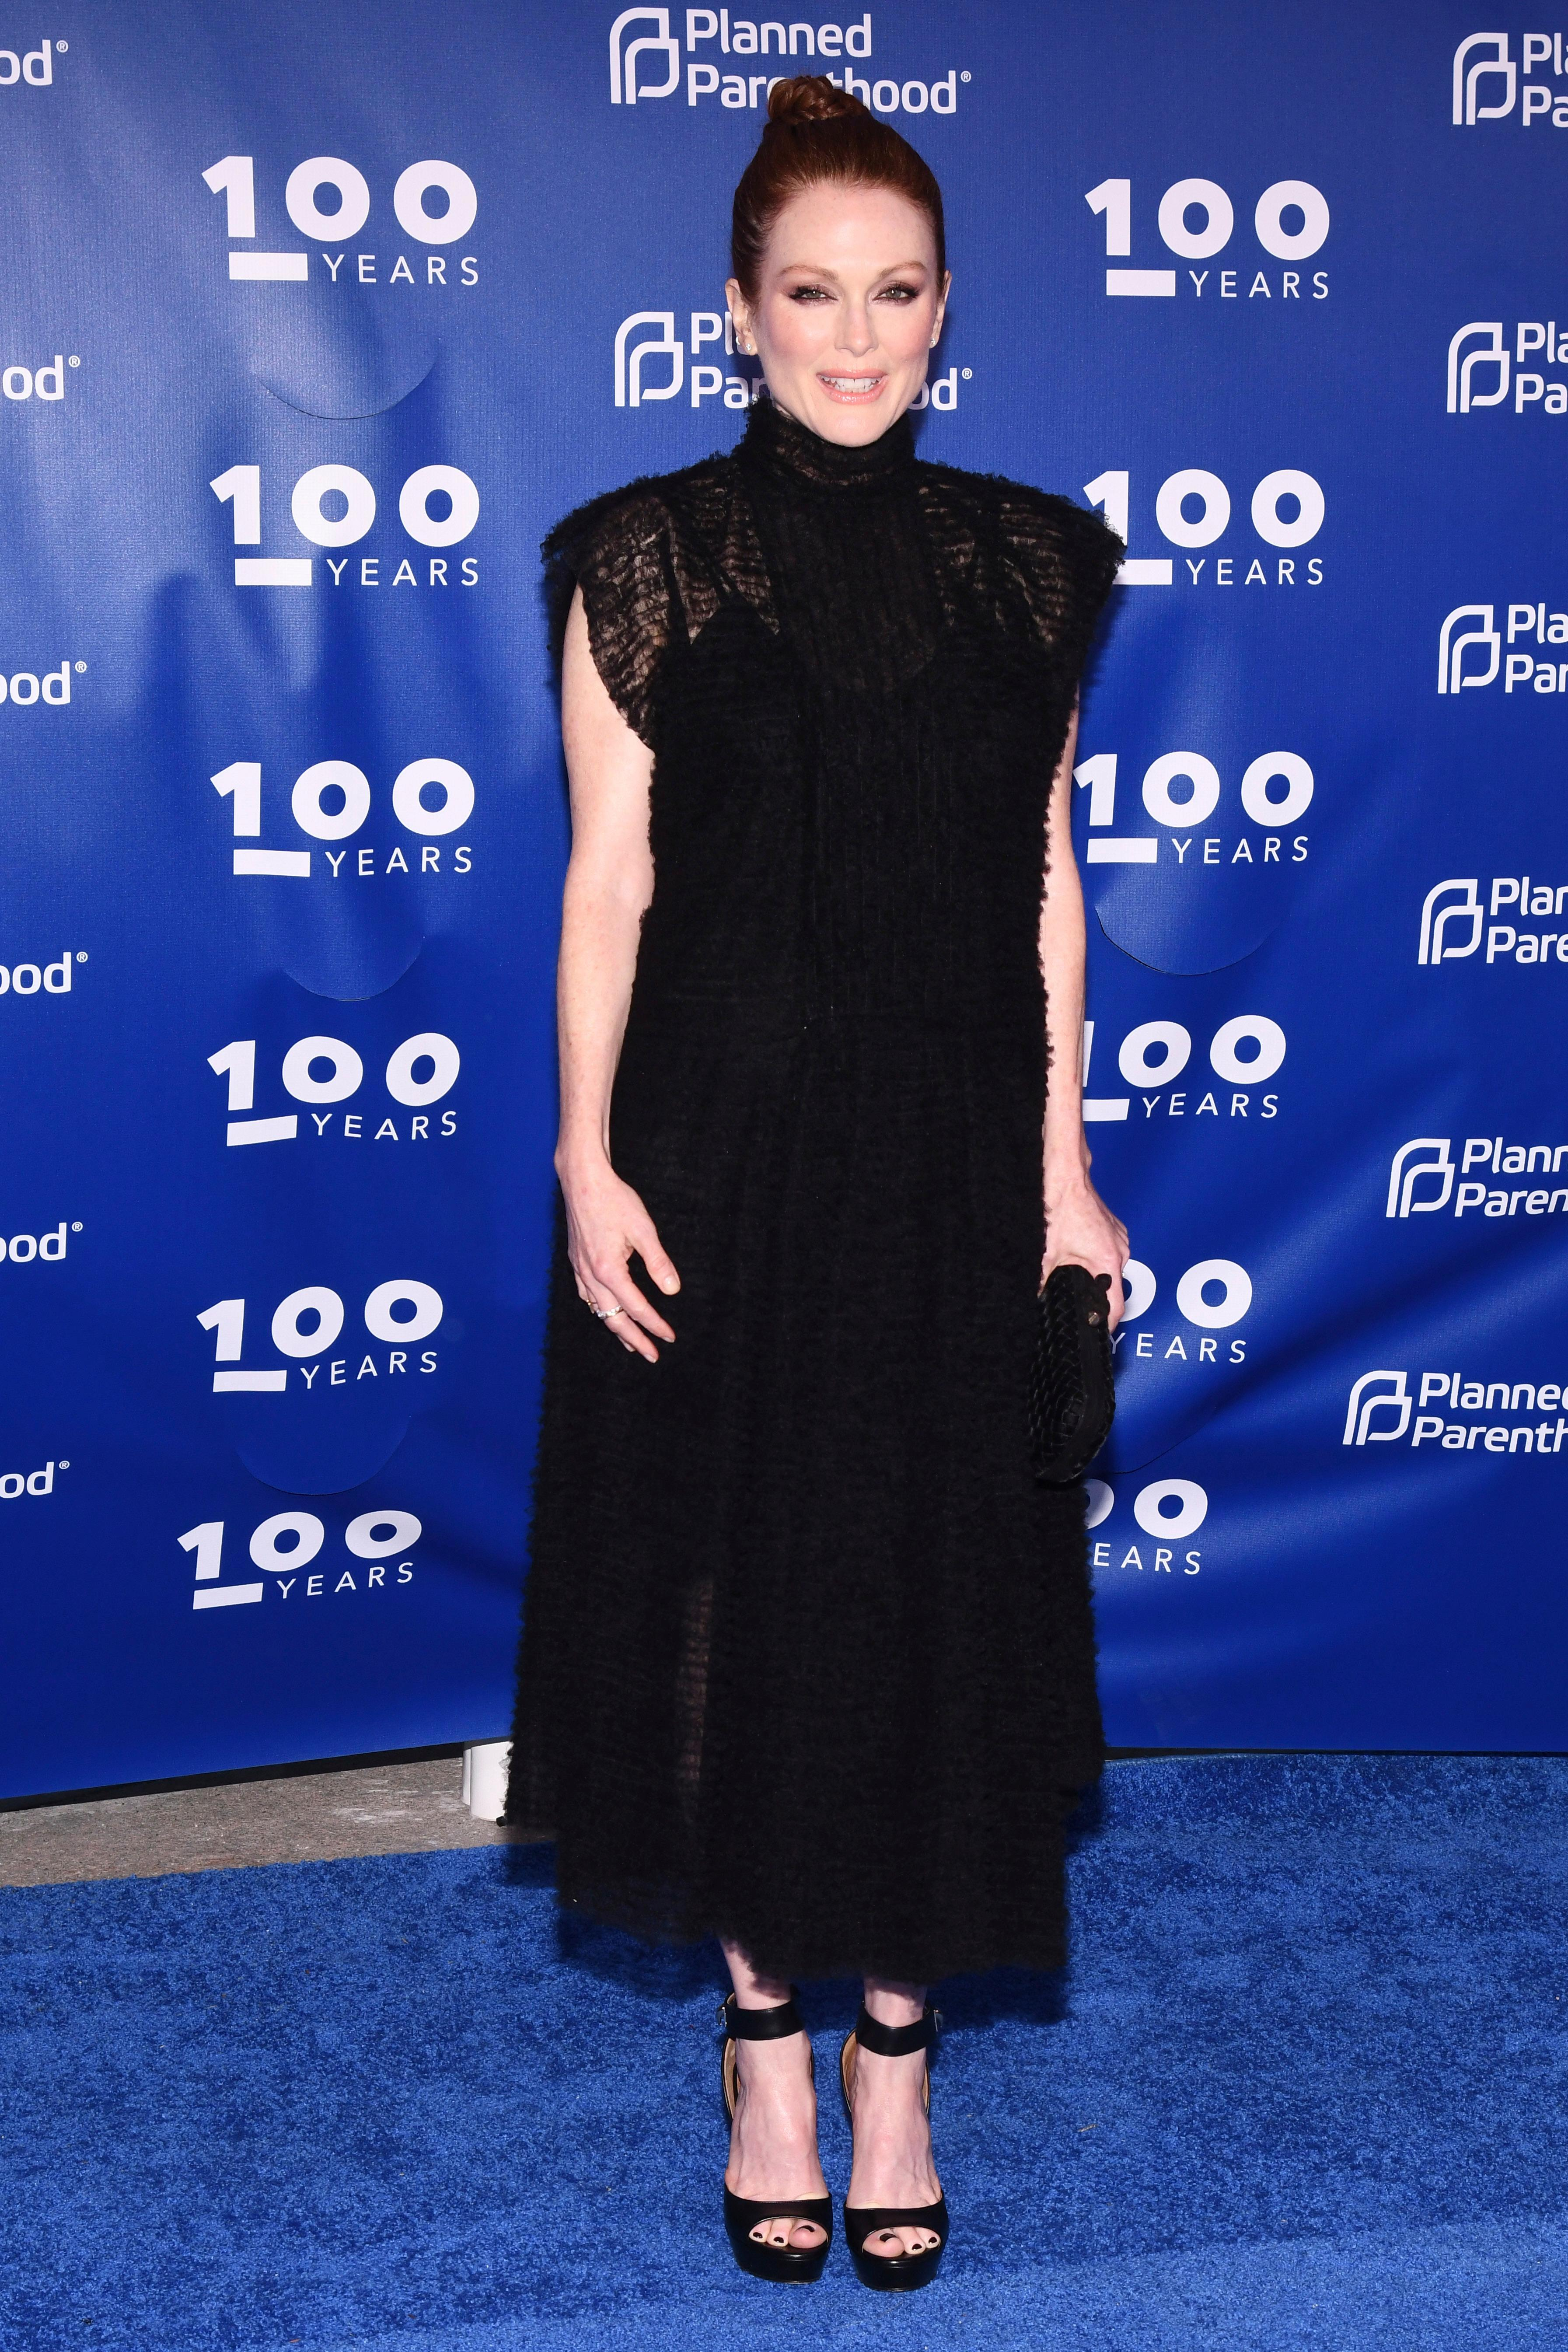 Julianne Moore attends the Planned Parenthood 100th Anniversary Gala on Tuesday, May 2, 2017 in New York. (Photo by Charles Sykes/Invision/AP)